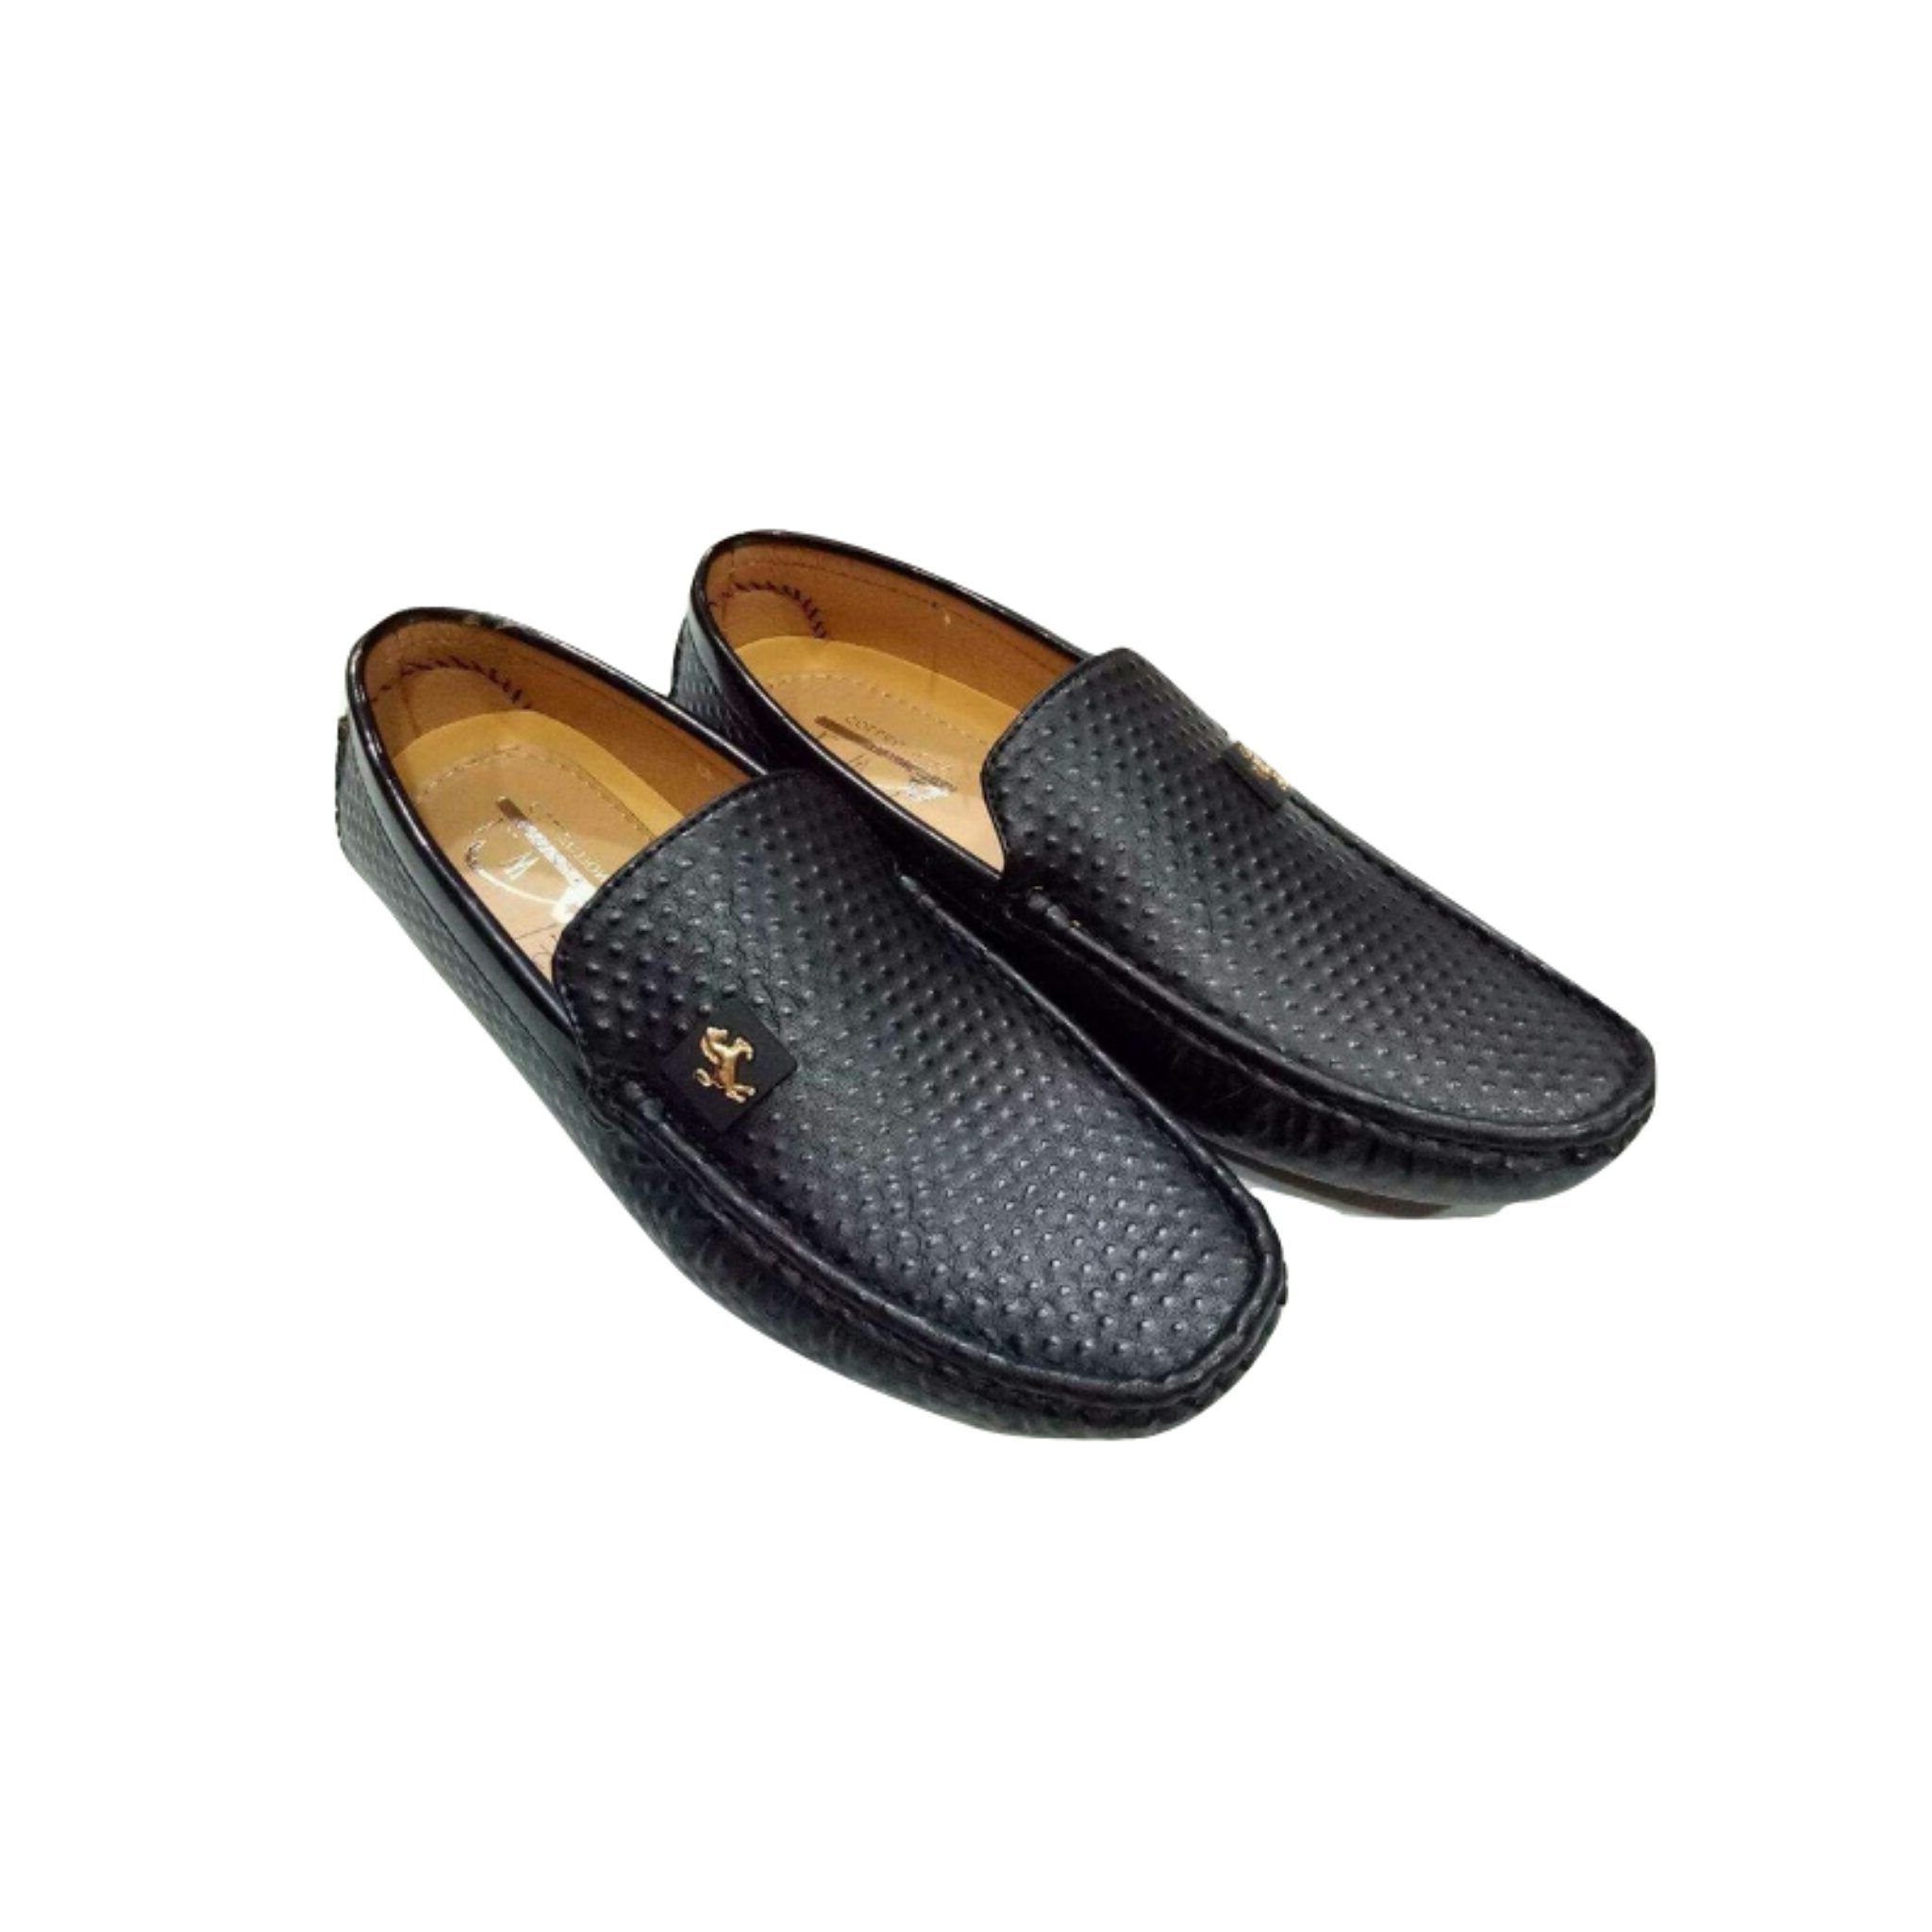 653177c24181 Mens Black Loafers Prices In Pakistan